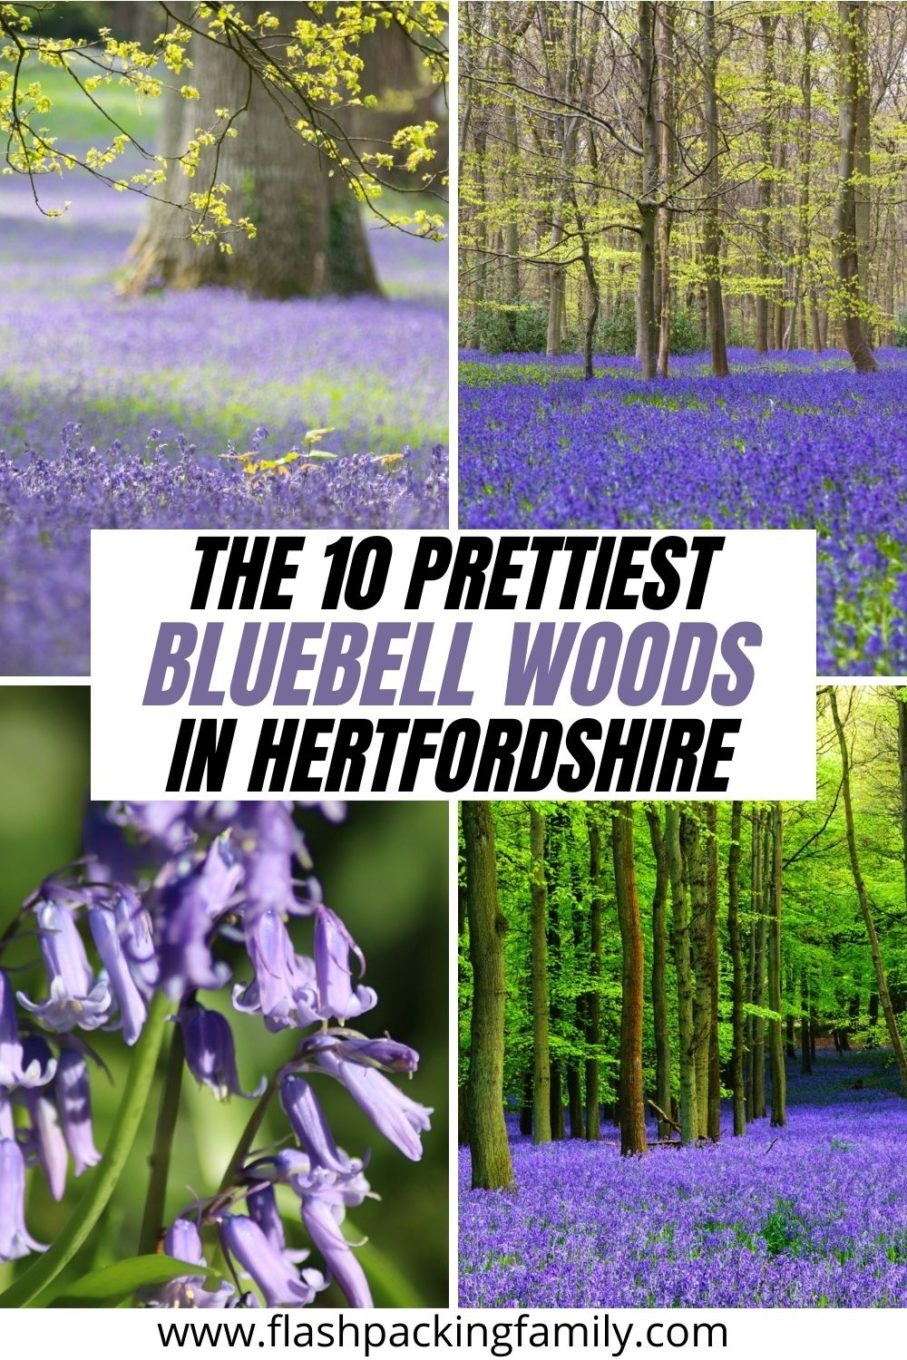 The 10 Prettiest Bluebell Woods in Hertfordshire